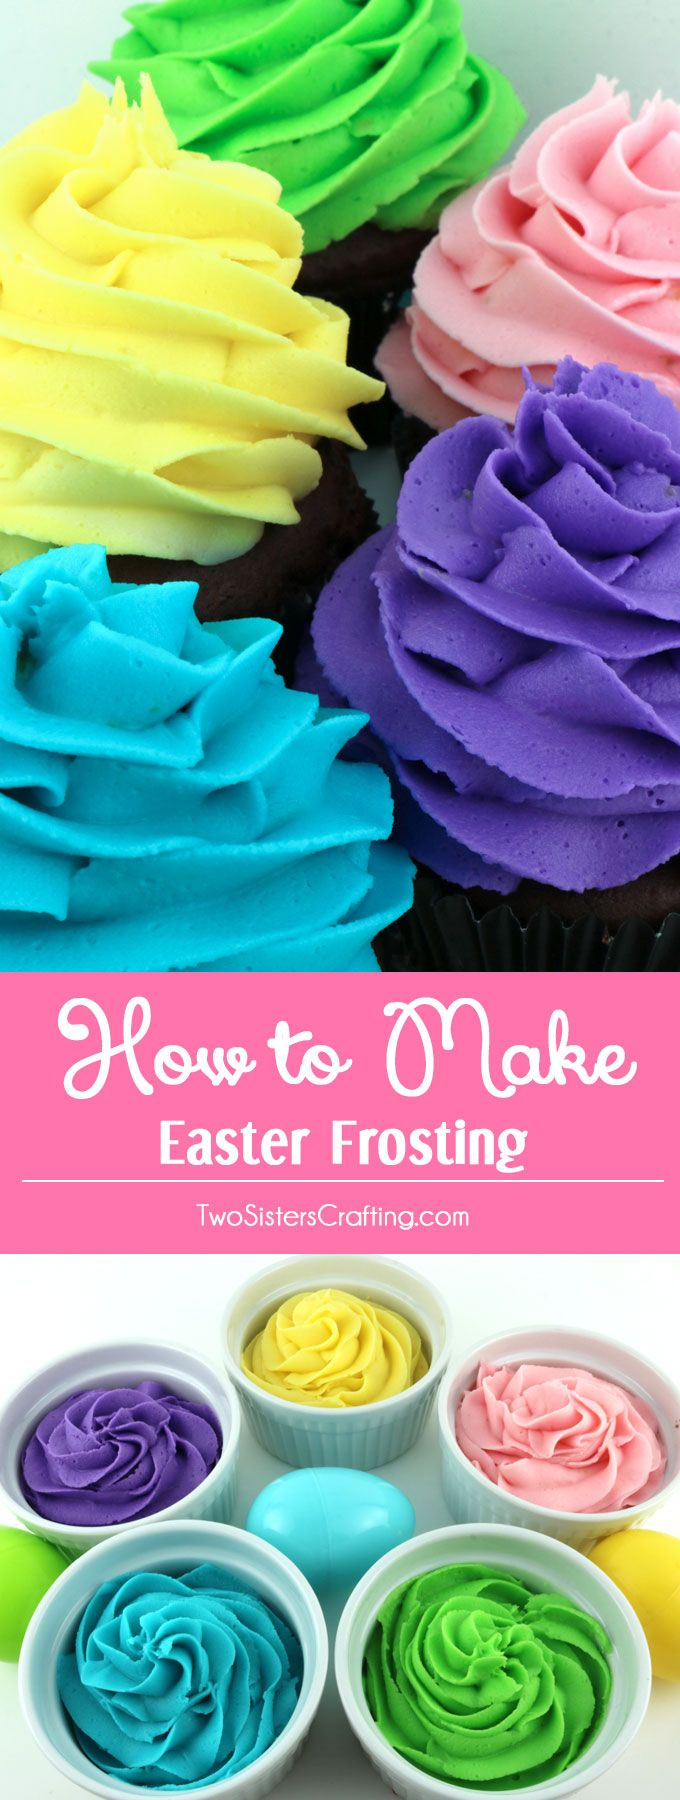 How to Make Easter Frosting - Yellow, Pink, Green, Blue and Purple Frosting couldn't be easier with our delicious Buttercream Frosting recipe and our tried and true food coloring formulas. Turn your Easter desserts from fine to spectacular. Pin this Easter Frosting Recipe for later and follow us for more great Easter Food ideas. #frosting #easter #easterdesserts #eastertreats #eastercupcakes #frostingrecipes